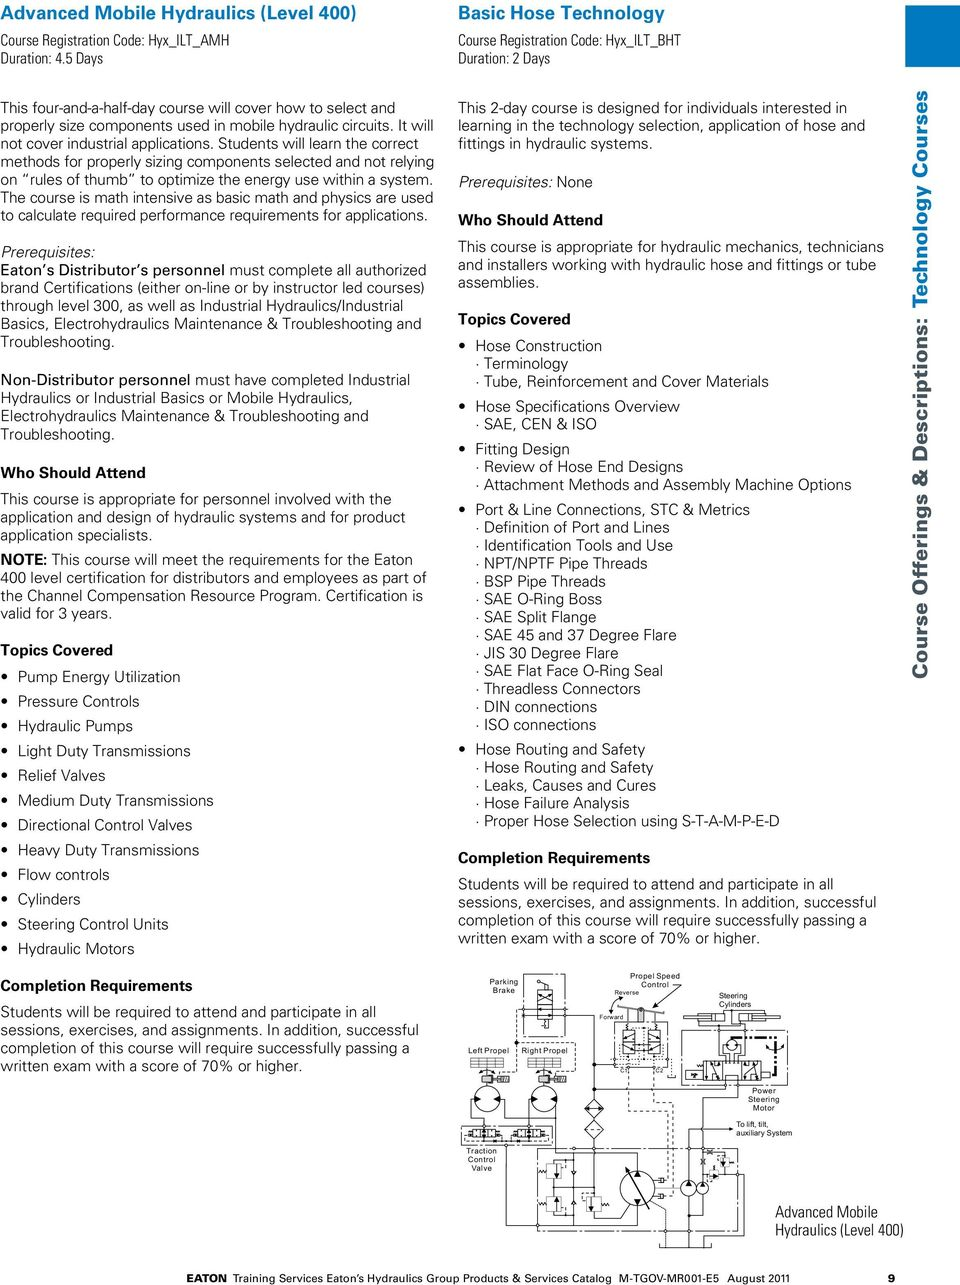 Eaton S Hydraulics Group Training Services Products And Simple Hydraulic System Diagram Industrial It Will Not Cover Applications